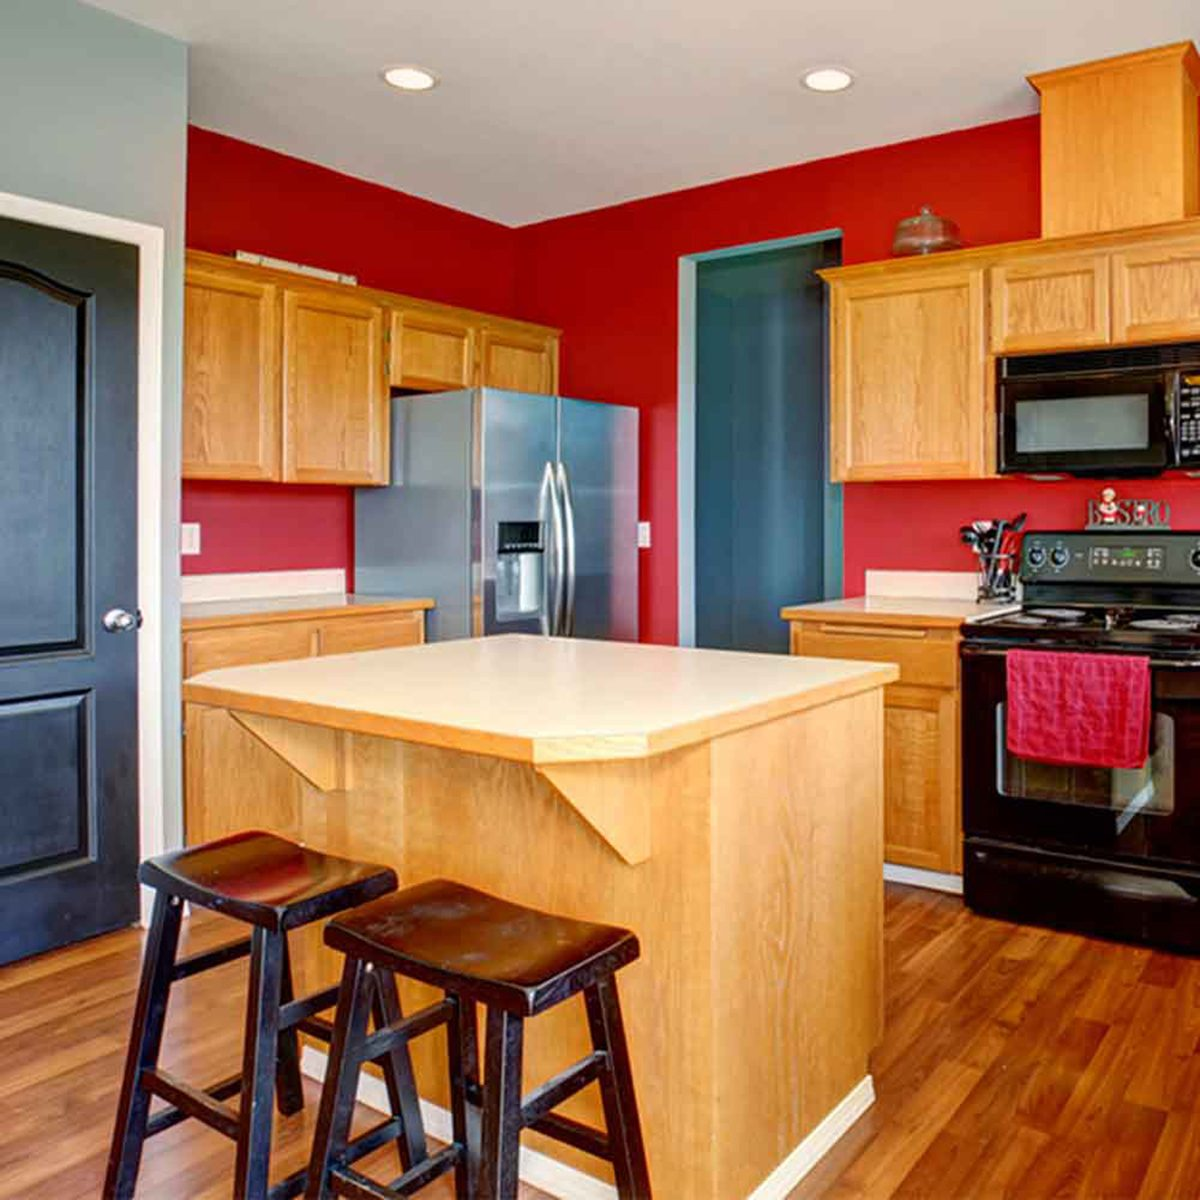 Brightly color red kitchen with a small wooden island